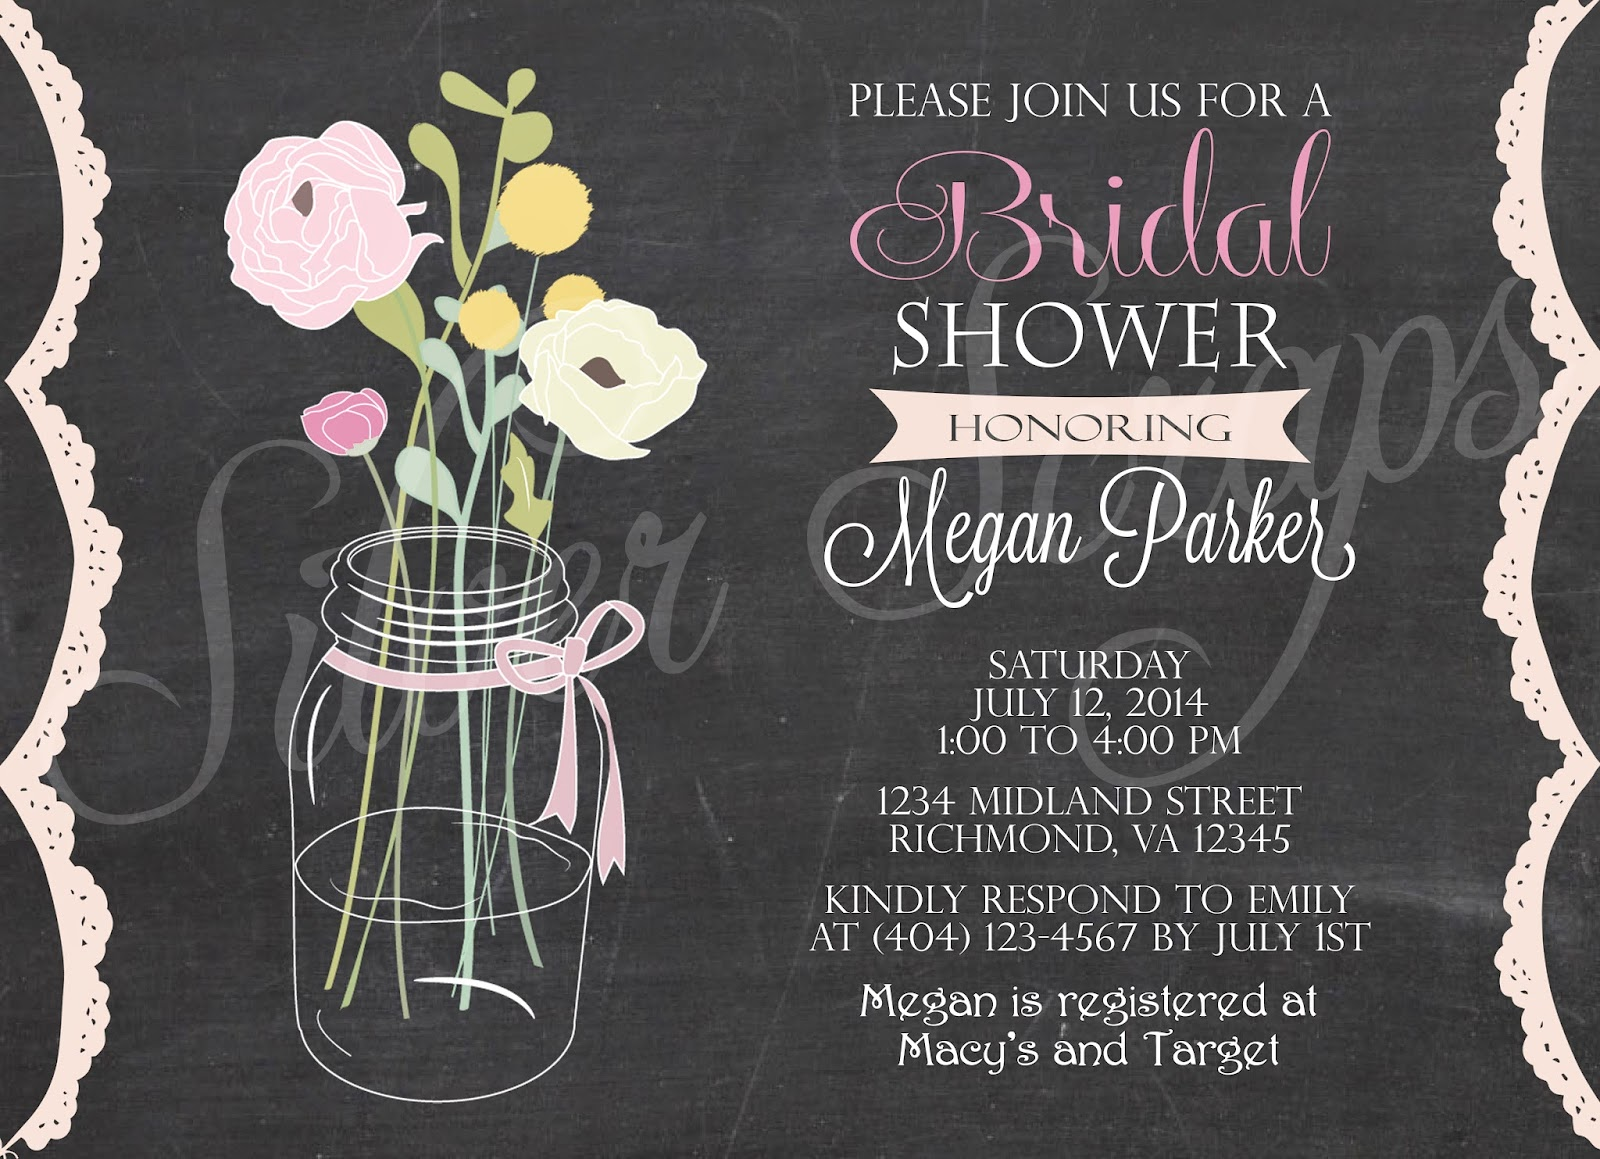 Chalkboard Vintage Mason Jar with Flowers - Custom Rehearsal Dinner, Bridal, Baby Shower, Engagement Party, Luncheon Invitation - 5 Designs rustic barn wedding vintage lace doily white black light dark pink teal blue green yellow bridesmaids brunch